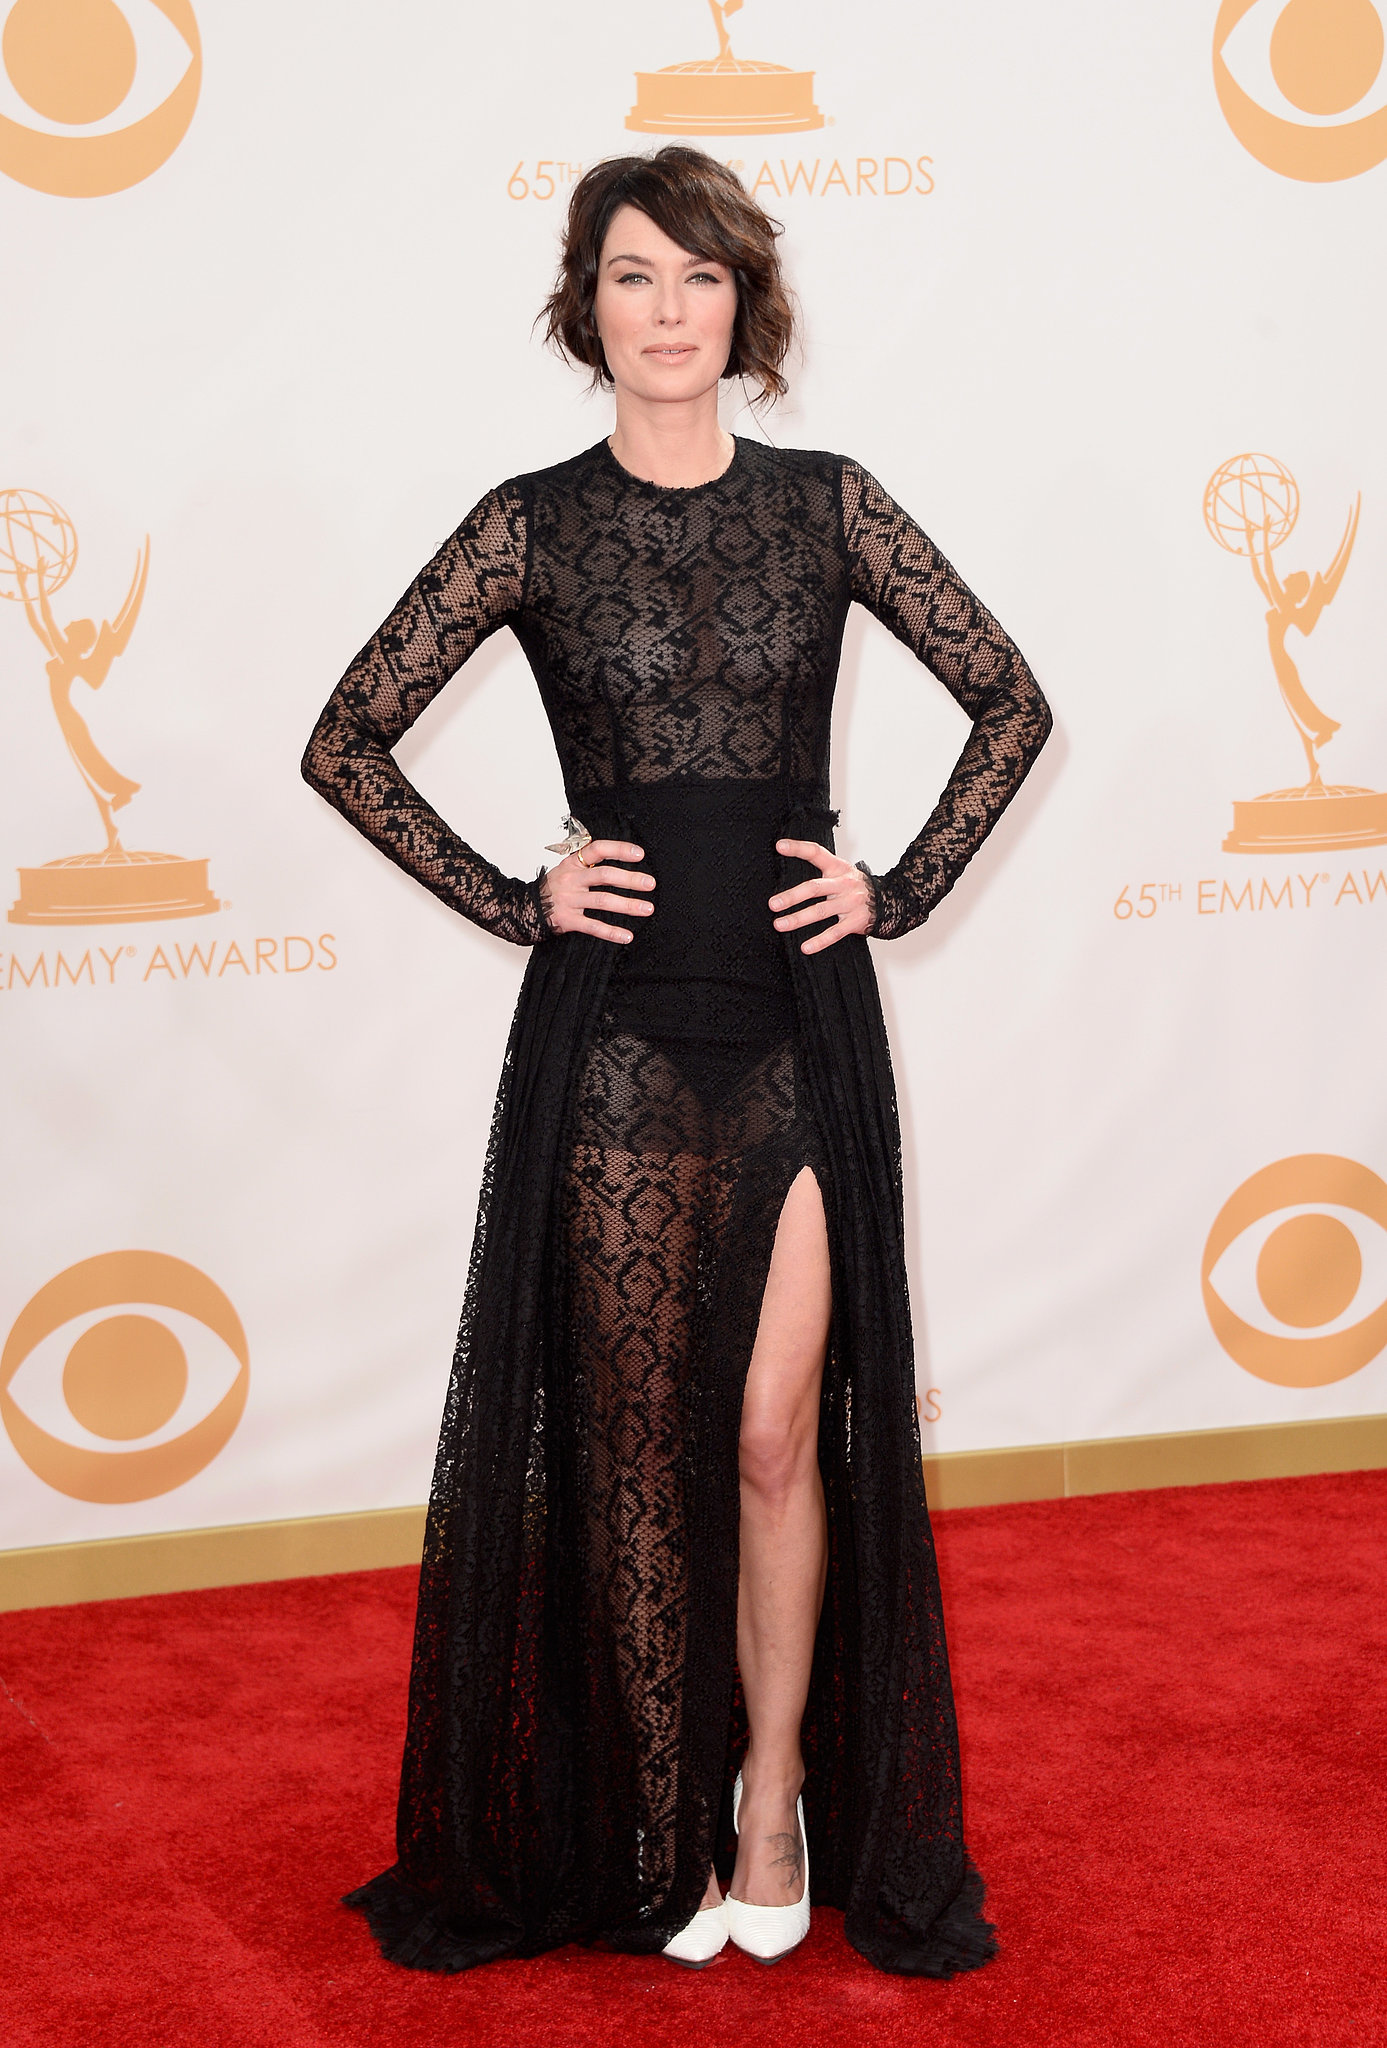 Game of Thrones actress Lena Headey struck a pose on the red carpet.